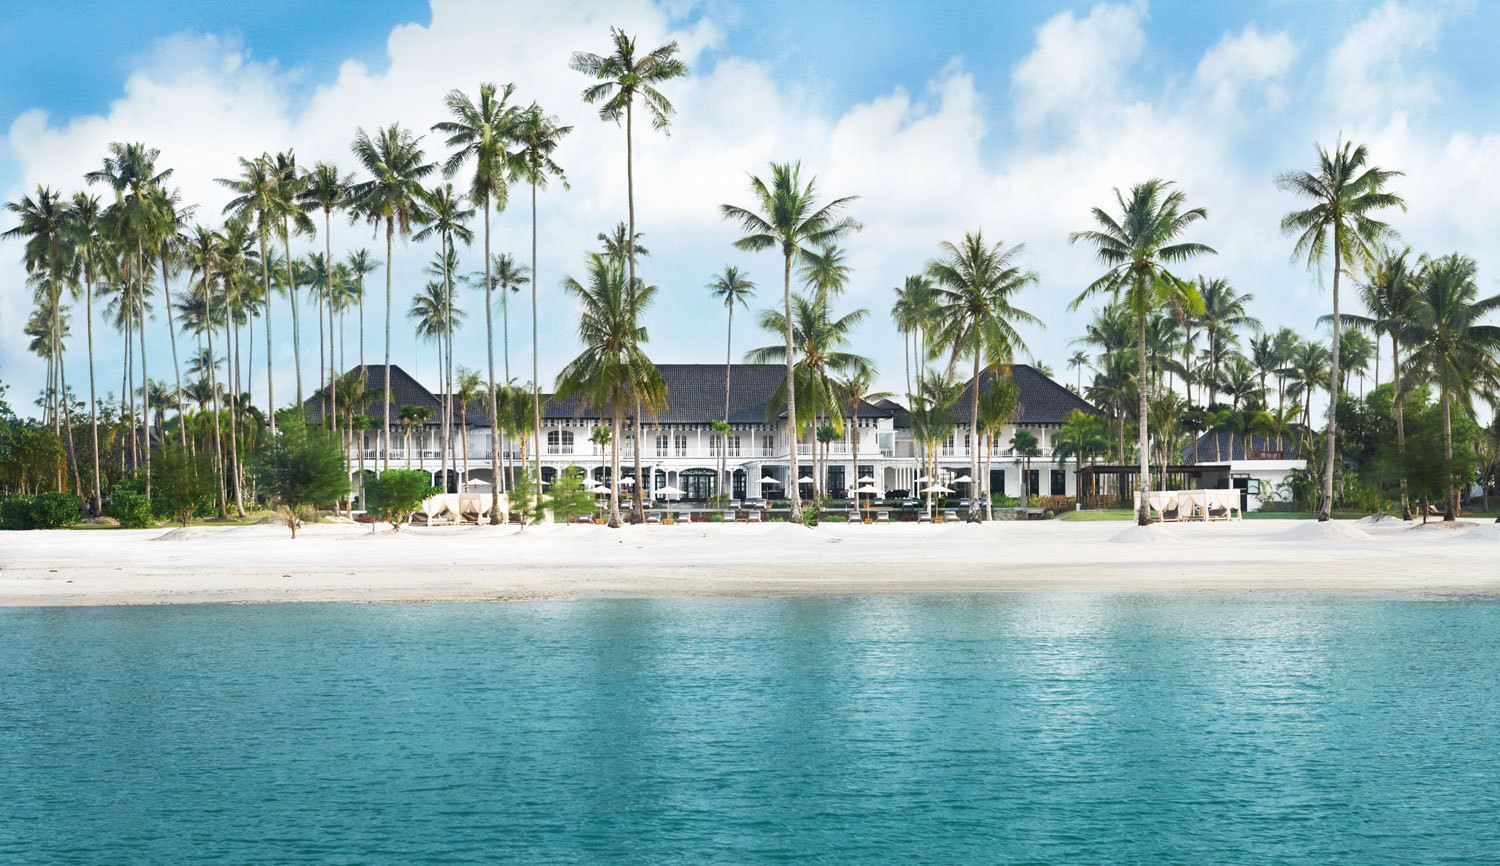 Setin a coconut grove on the Indonesian island of Bintan, the colonial-style Sanchaya resort overlooks cerulean seas and a white-sand shore.